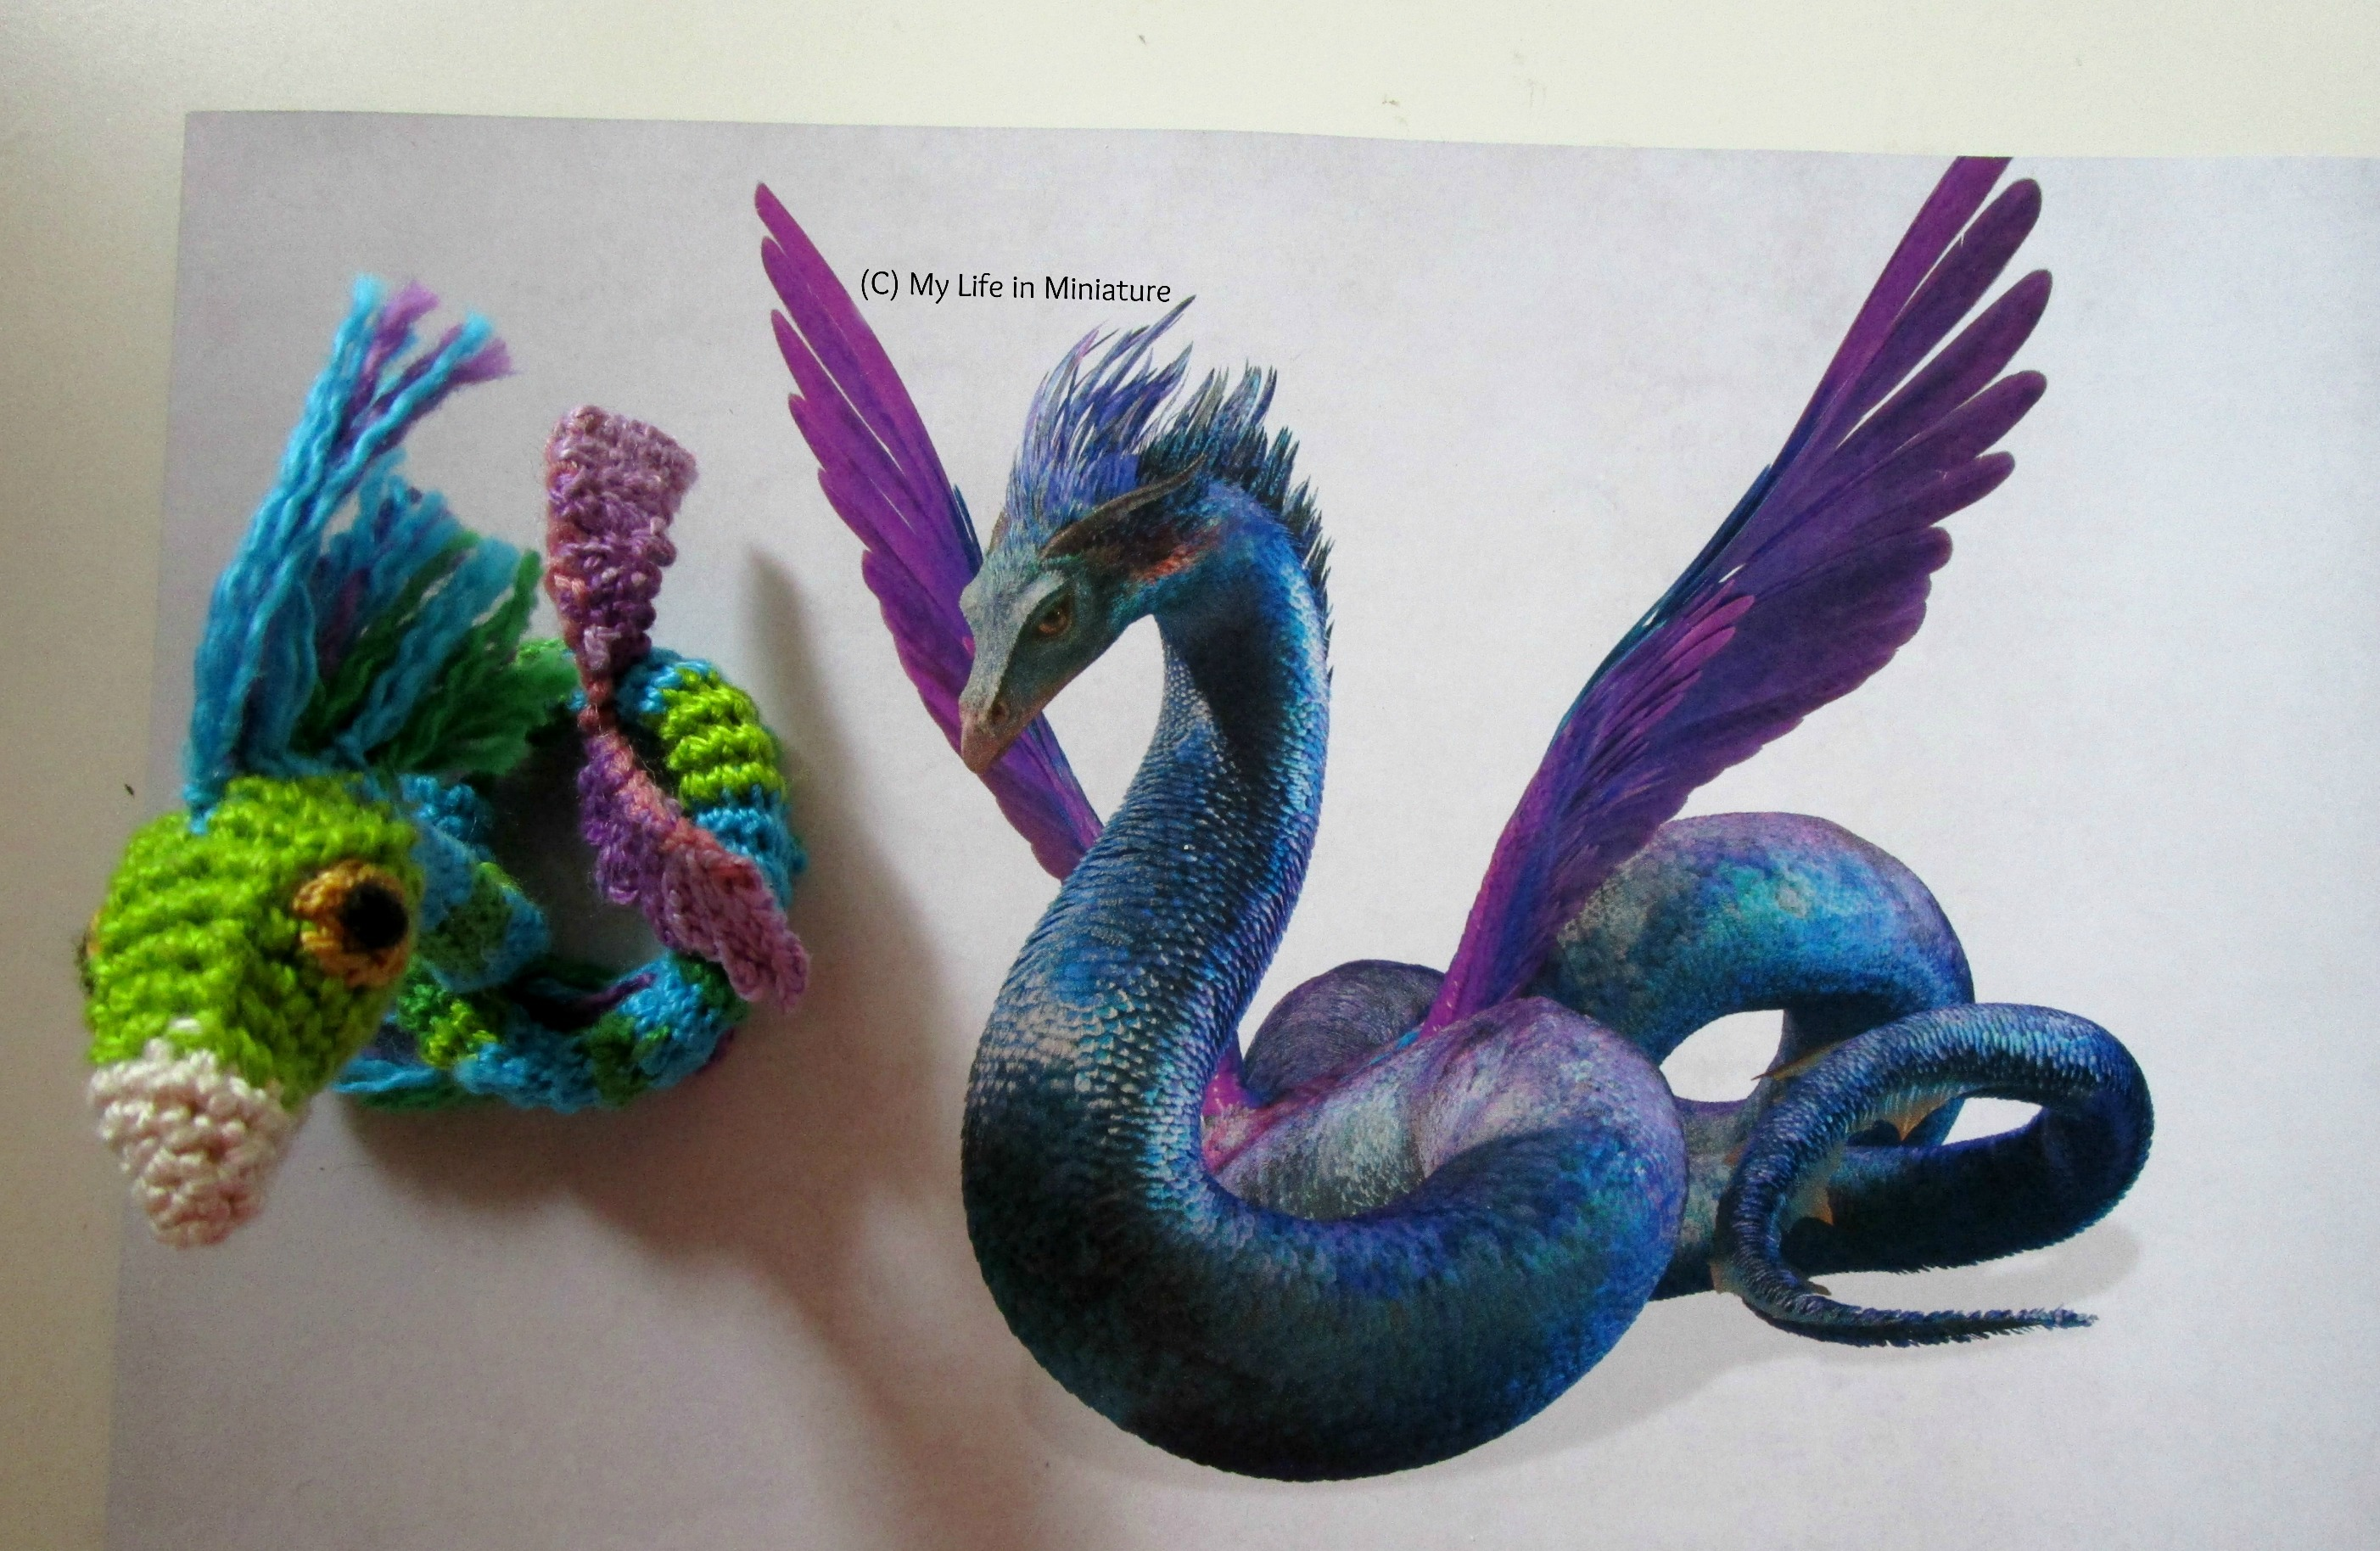 Aerial shot of a crocheted occamy sitting coiled on a book page. The occamy looks up at the camera, and the book page has an image of a concept art occamy.